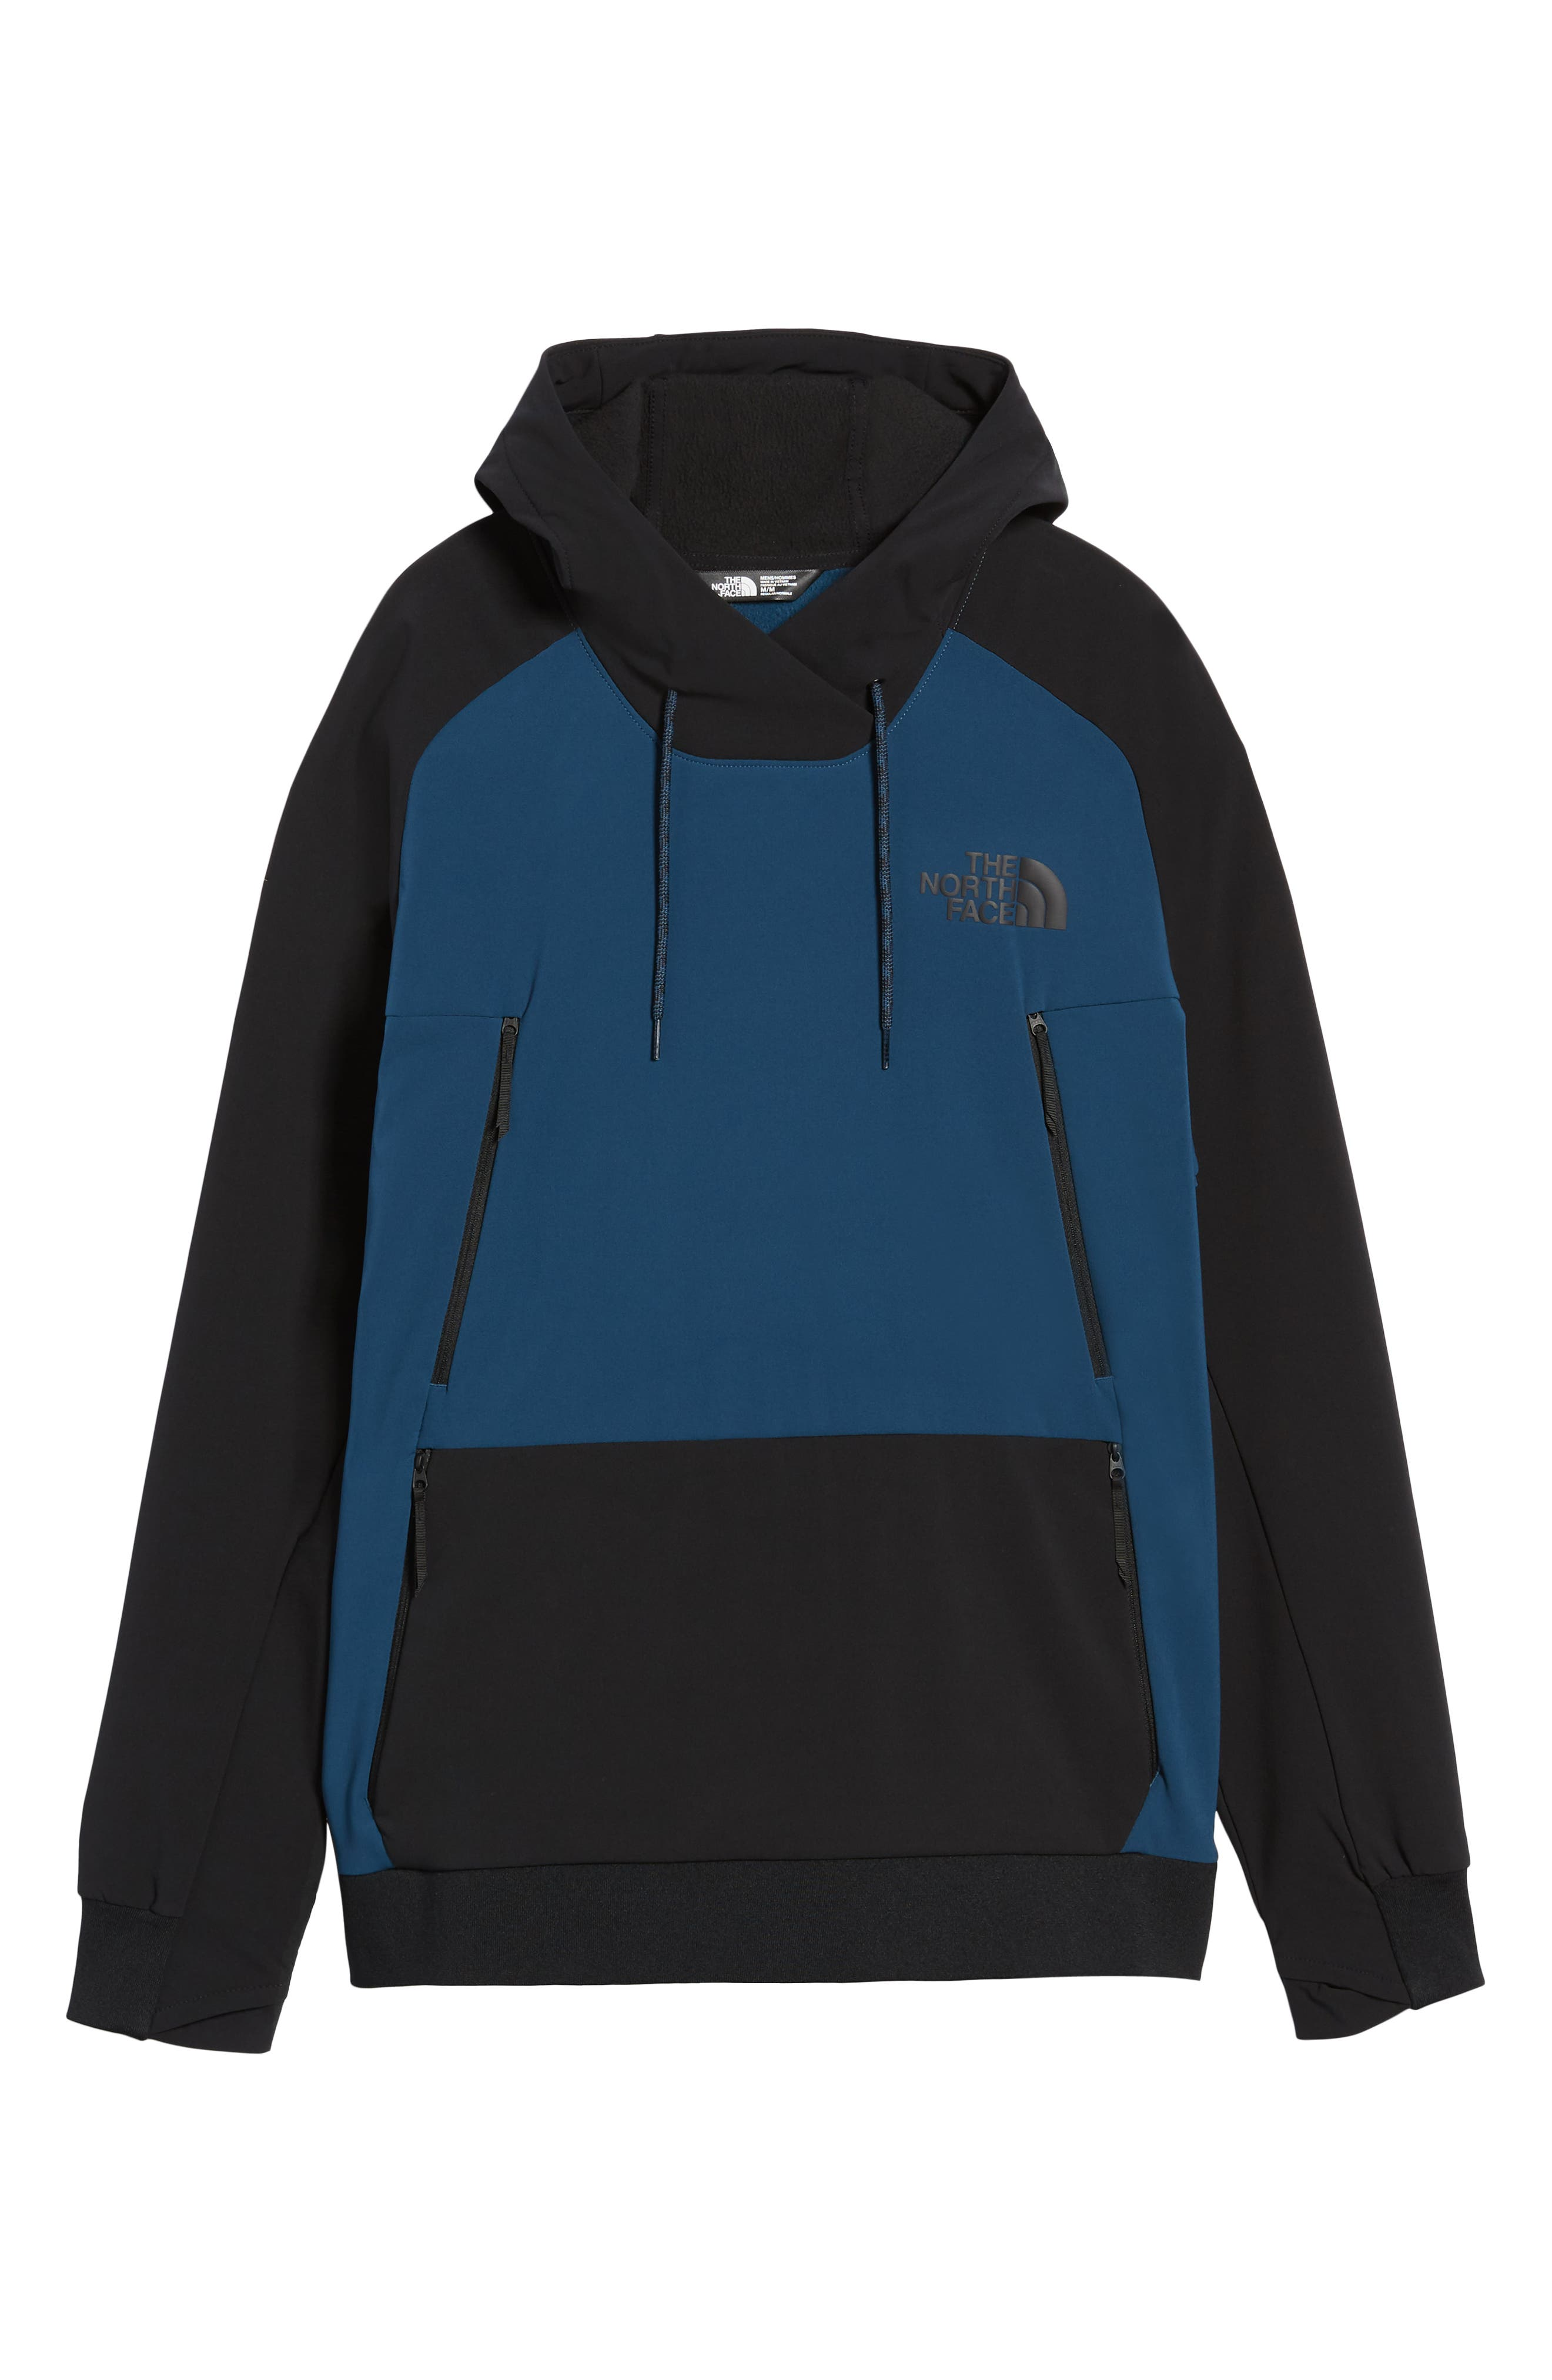 Tekno Pullover Hoodie,                             Alternate thumbnail 7, color,                             BLUE WING TEAL/ TNF BLACK